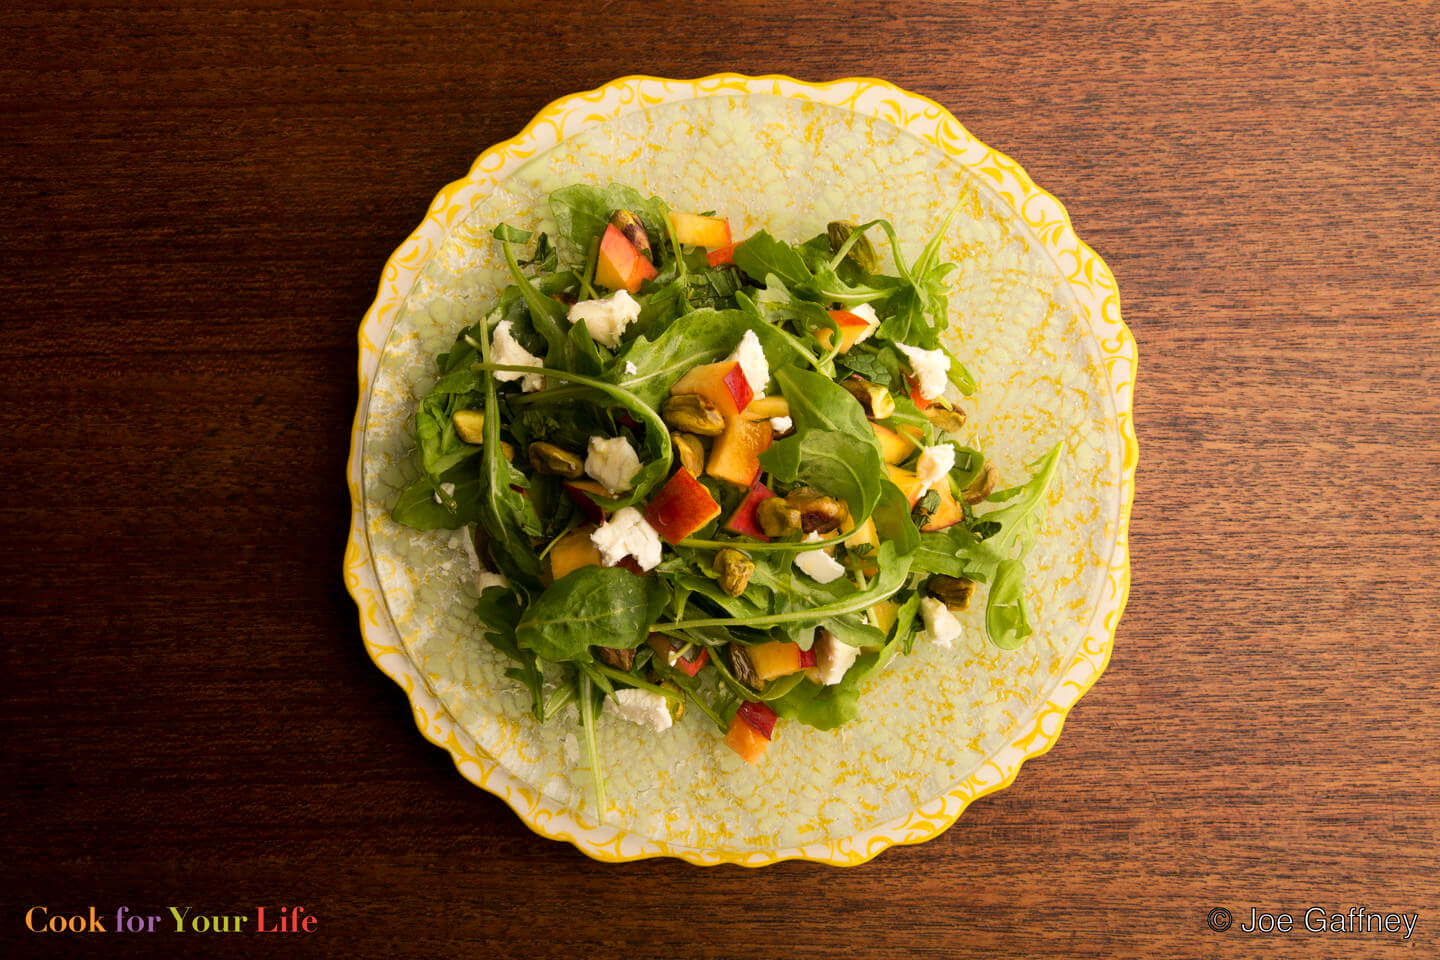 """Peach & Arugula Salad - """"Peach and Arugula salad brings the peppery bitterness of cruciferous arugula and the sweetness of ripe peaches together in a match made in heaven. Throw in the salty tang of feta, and you have an easy salad that's truly special.""""via Cook For Your Life"""